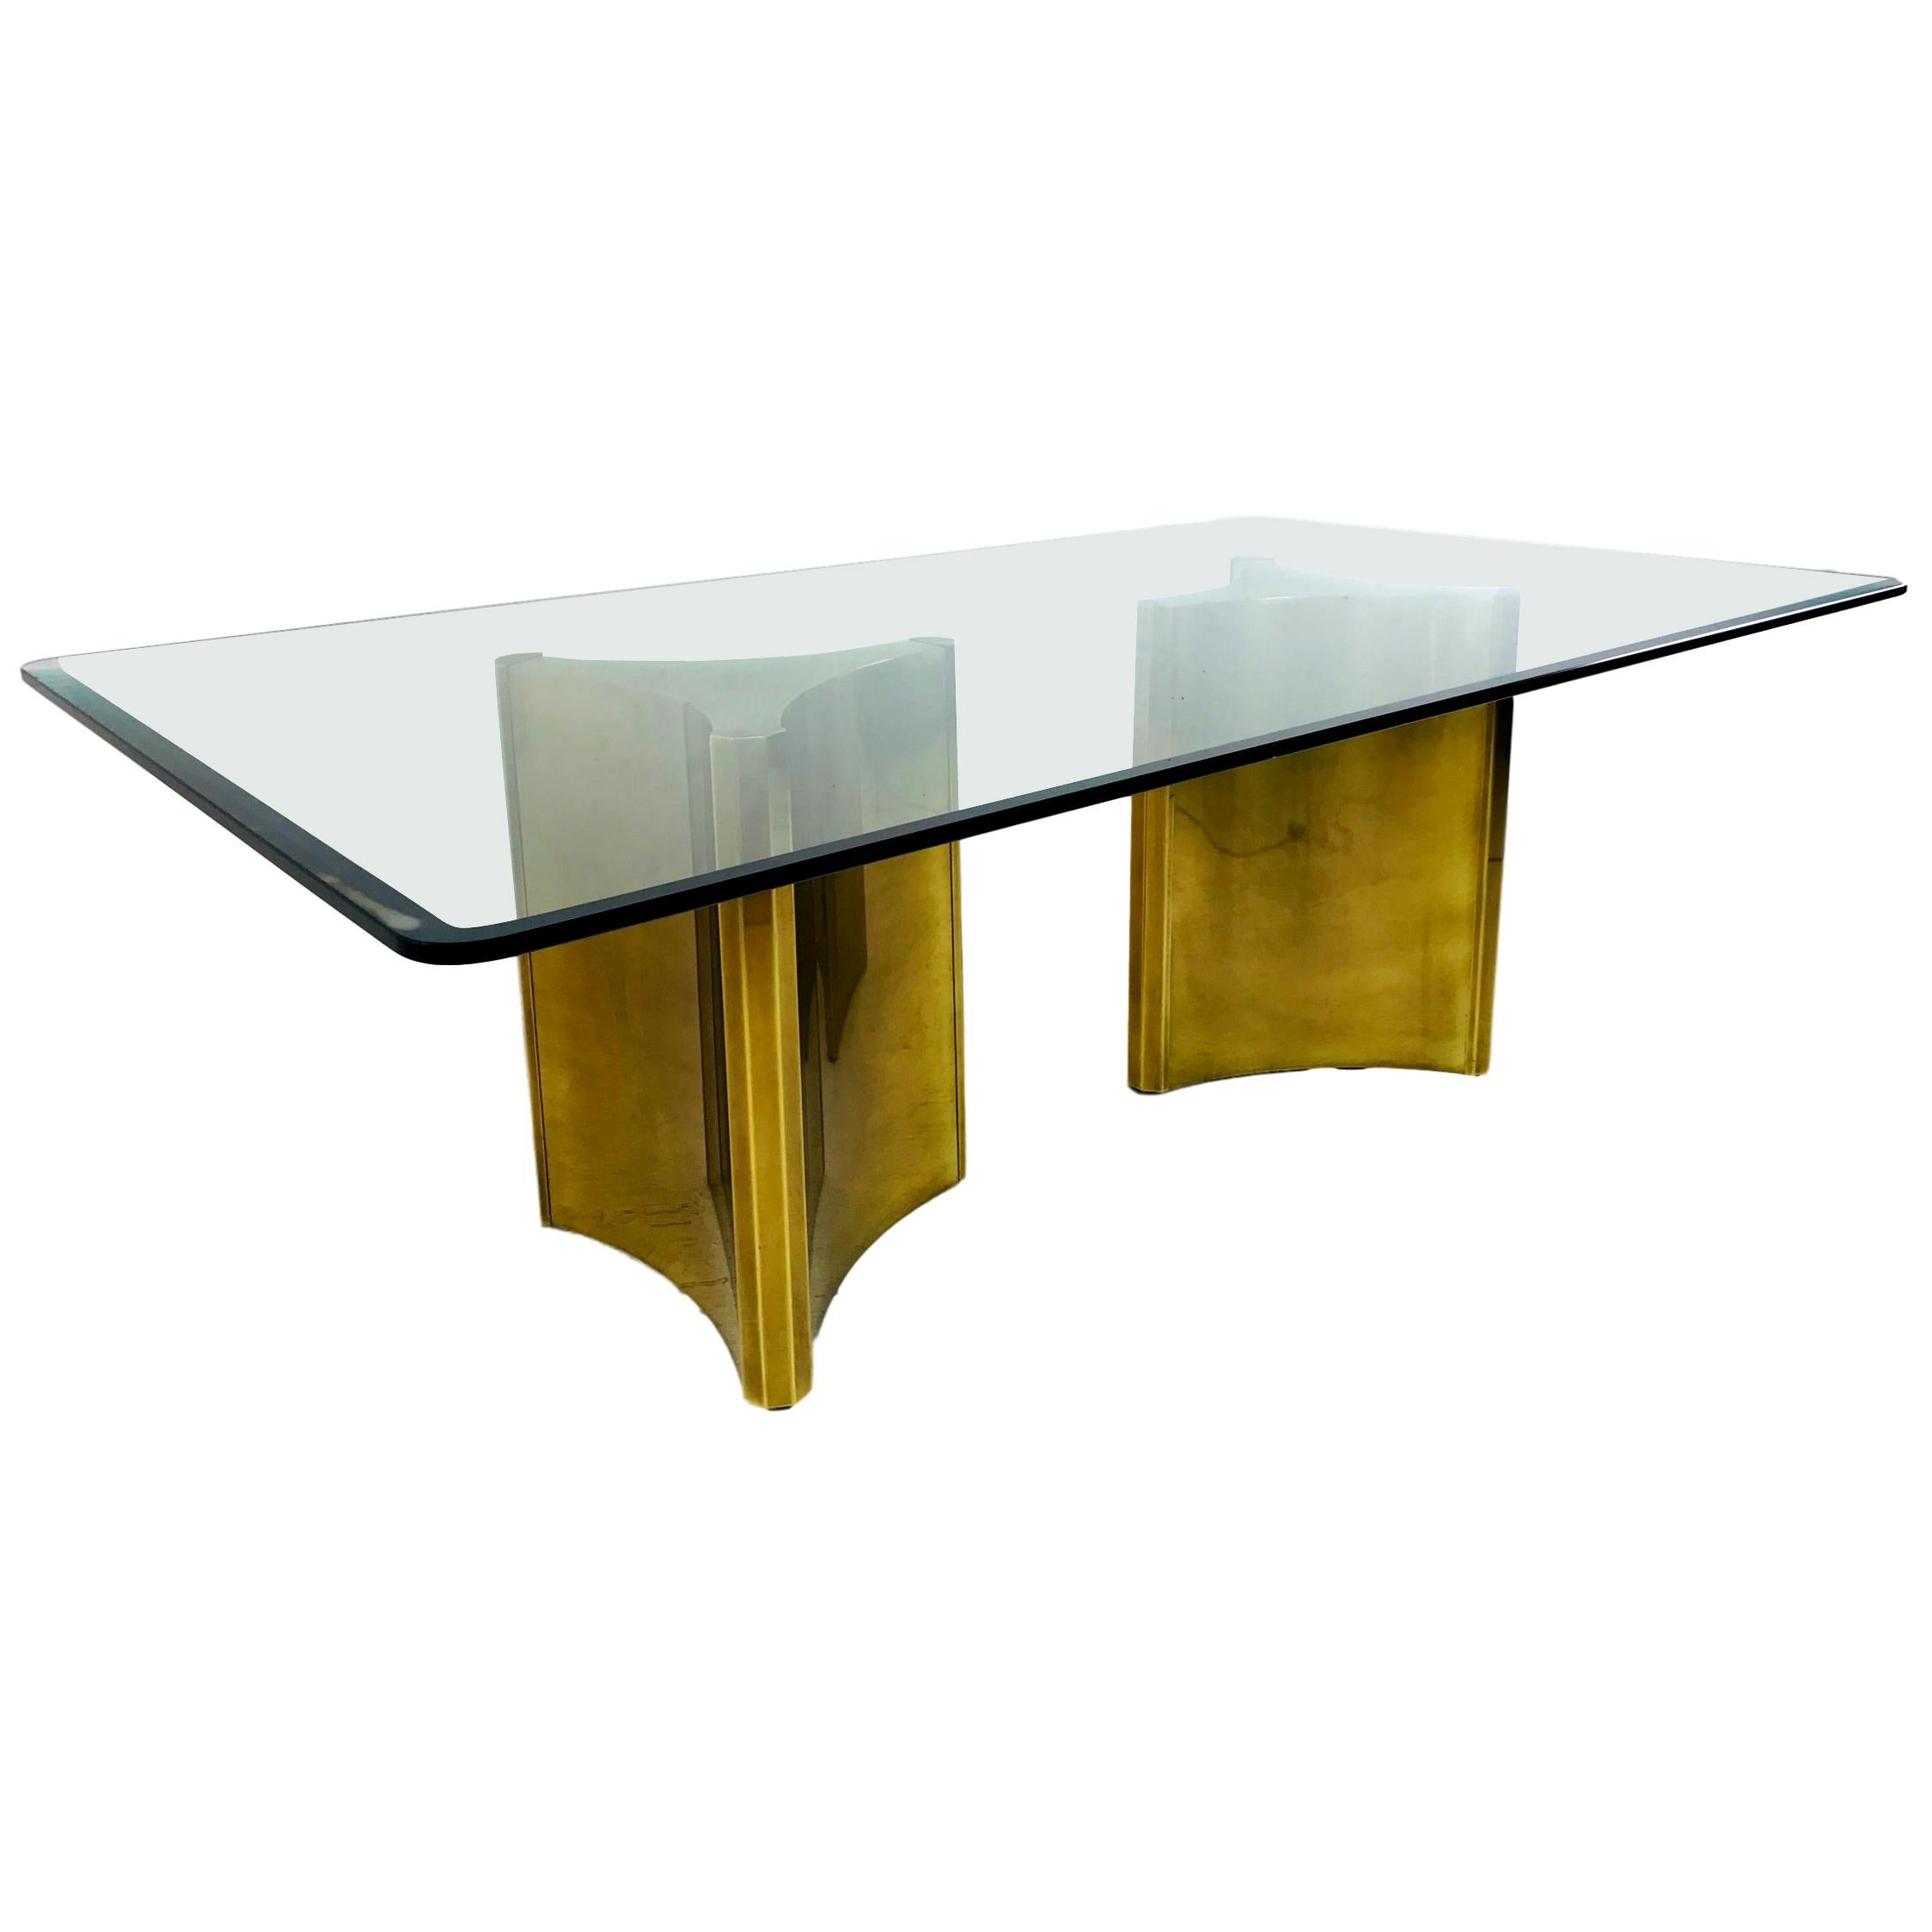 "Mastercraft ""Trilobi"" Brass Pedestal Table"